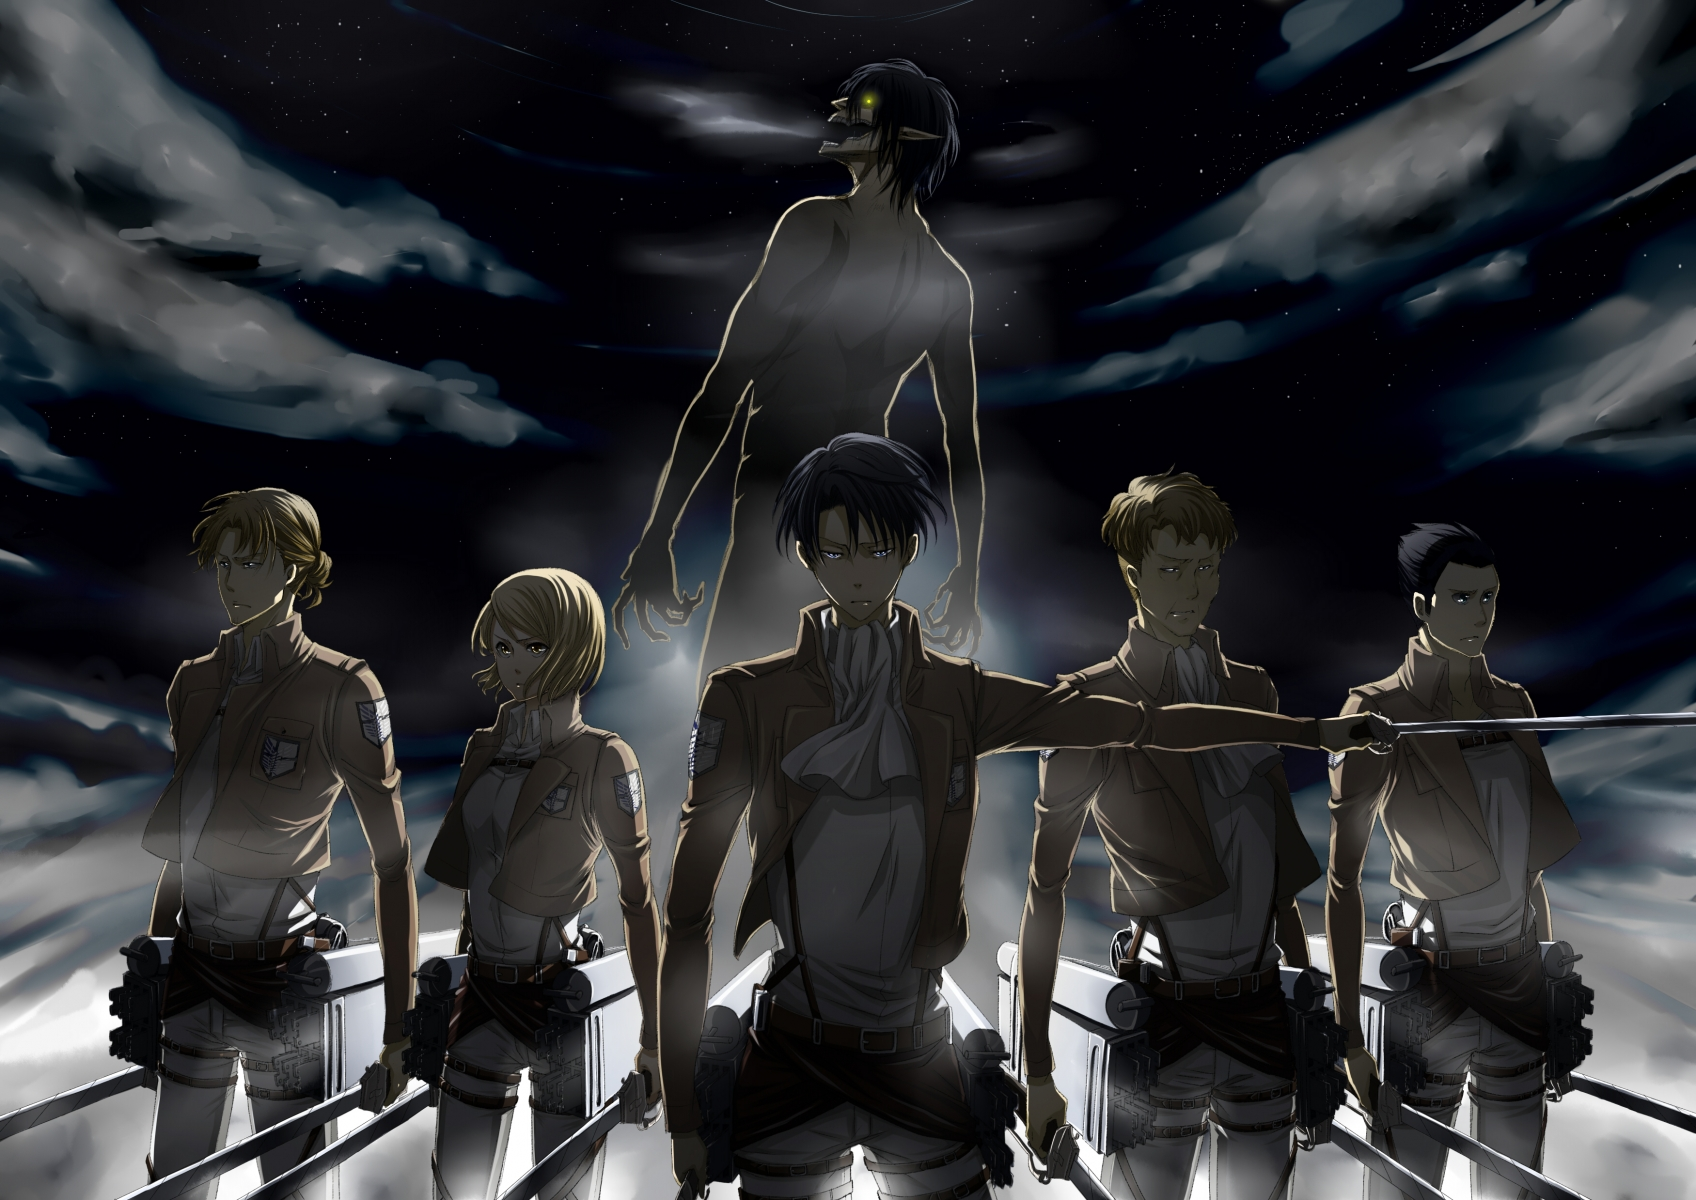 Attack On Titans Hd Wallpaper Posted By Sarah Thompson